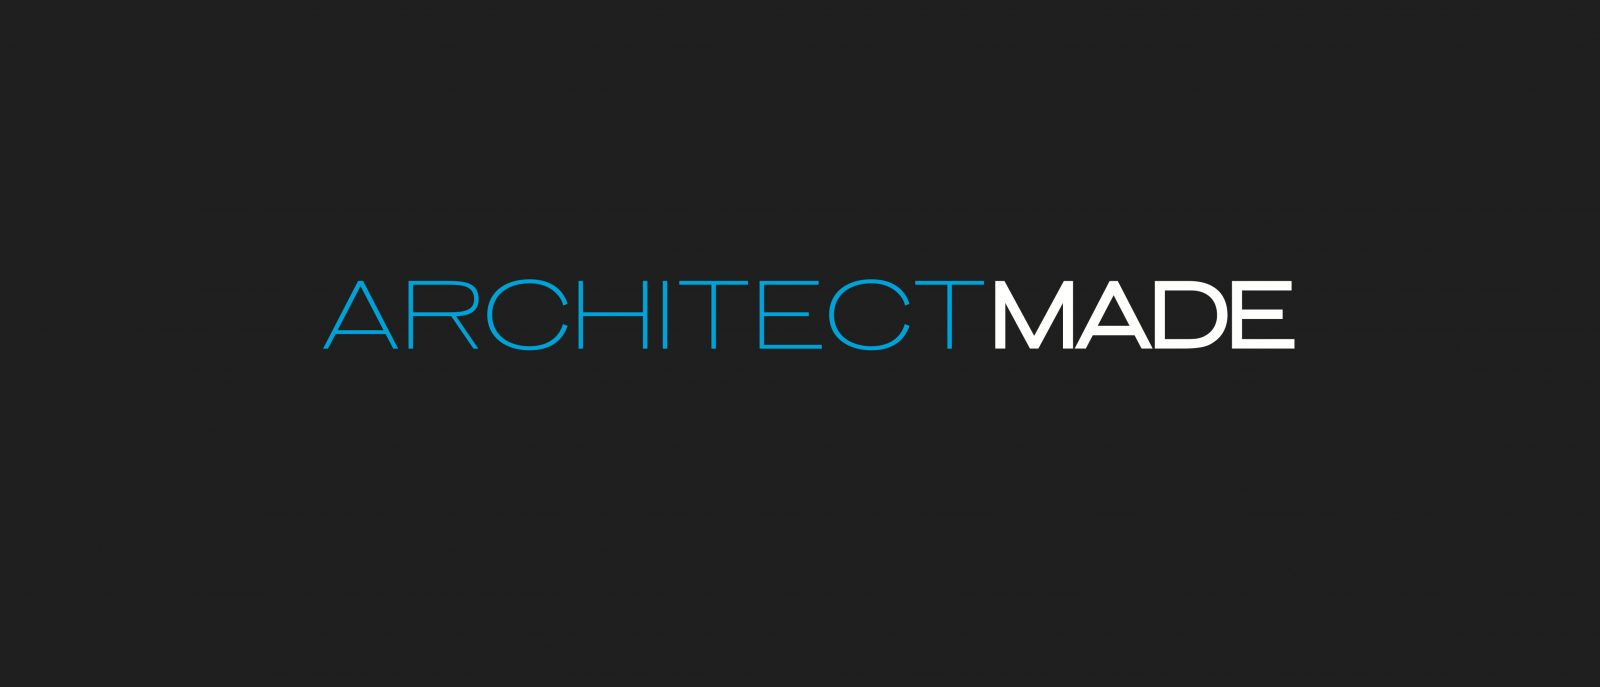 Architect made Logo